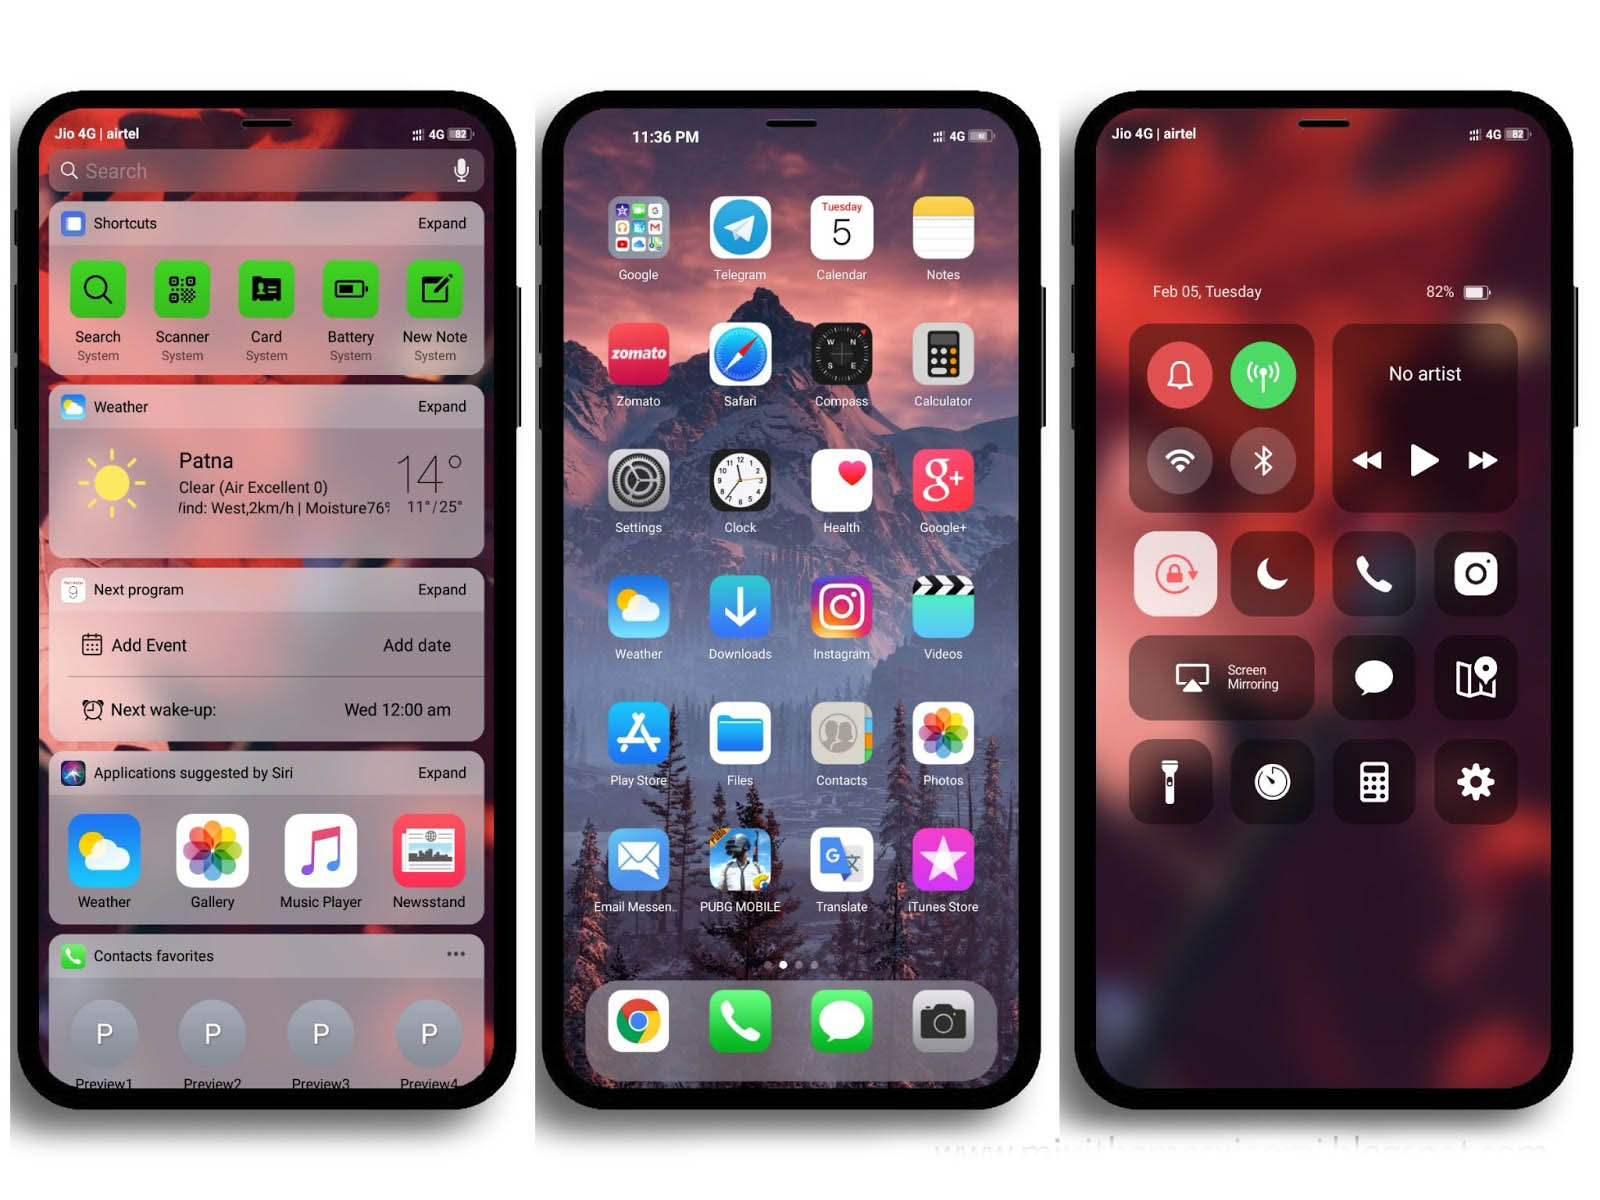 iPhone XS Max MIUI Theme Downloaded For Xiaomi Mobile